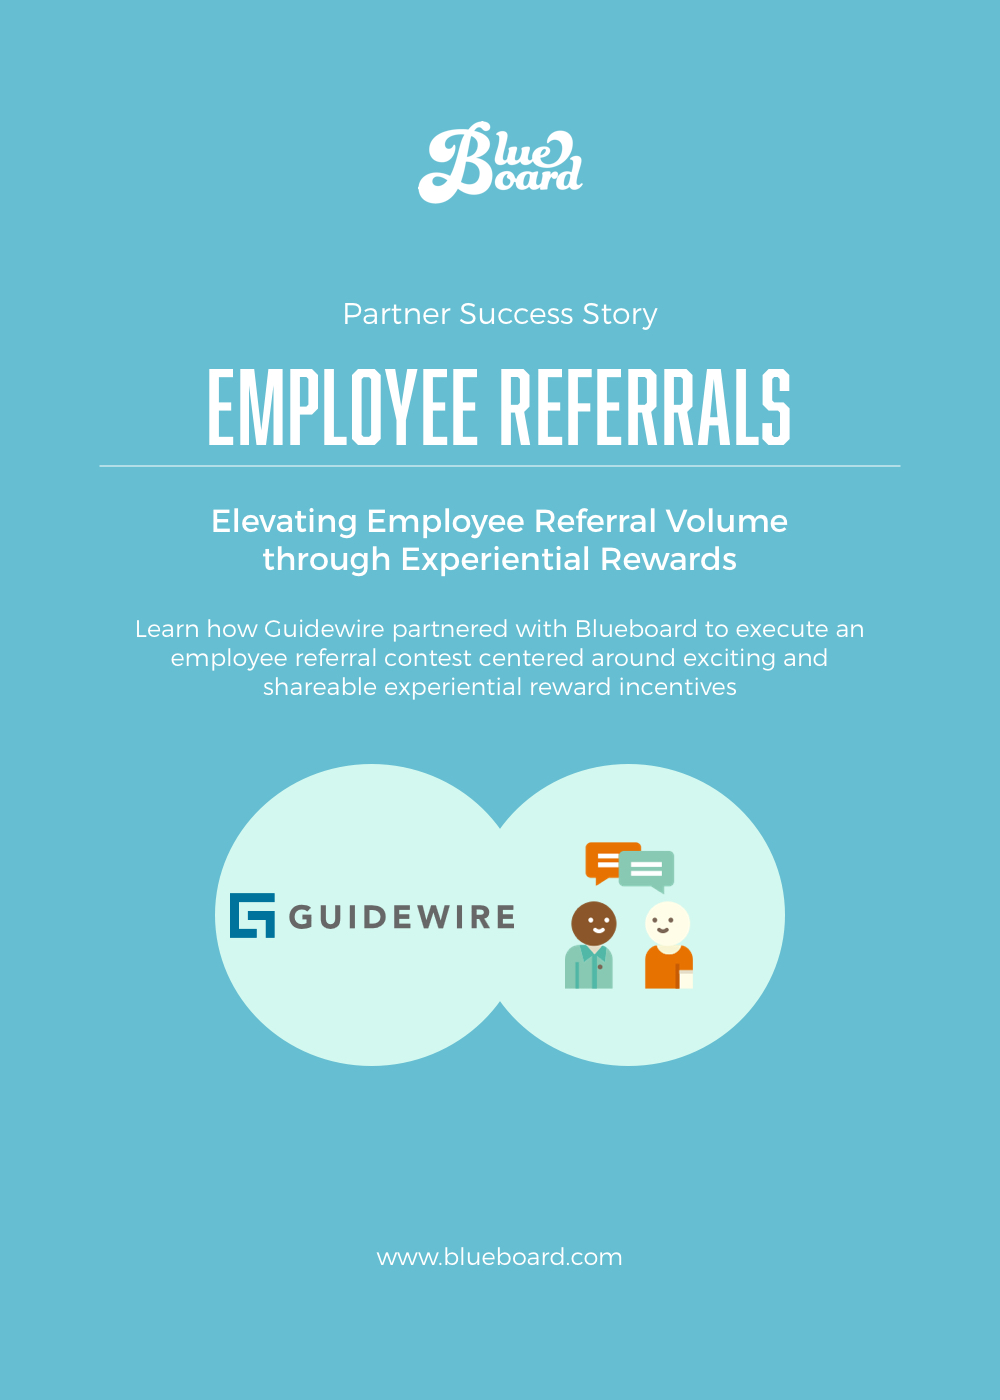 Guidewire Case Study Cover